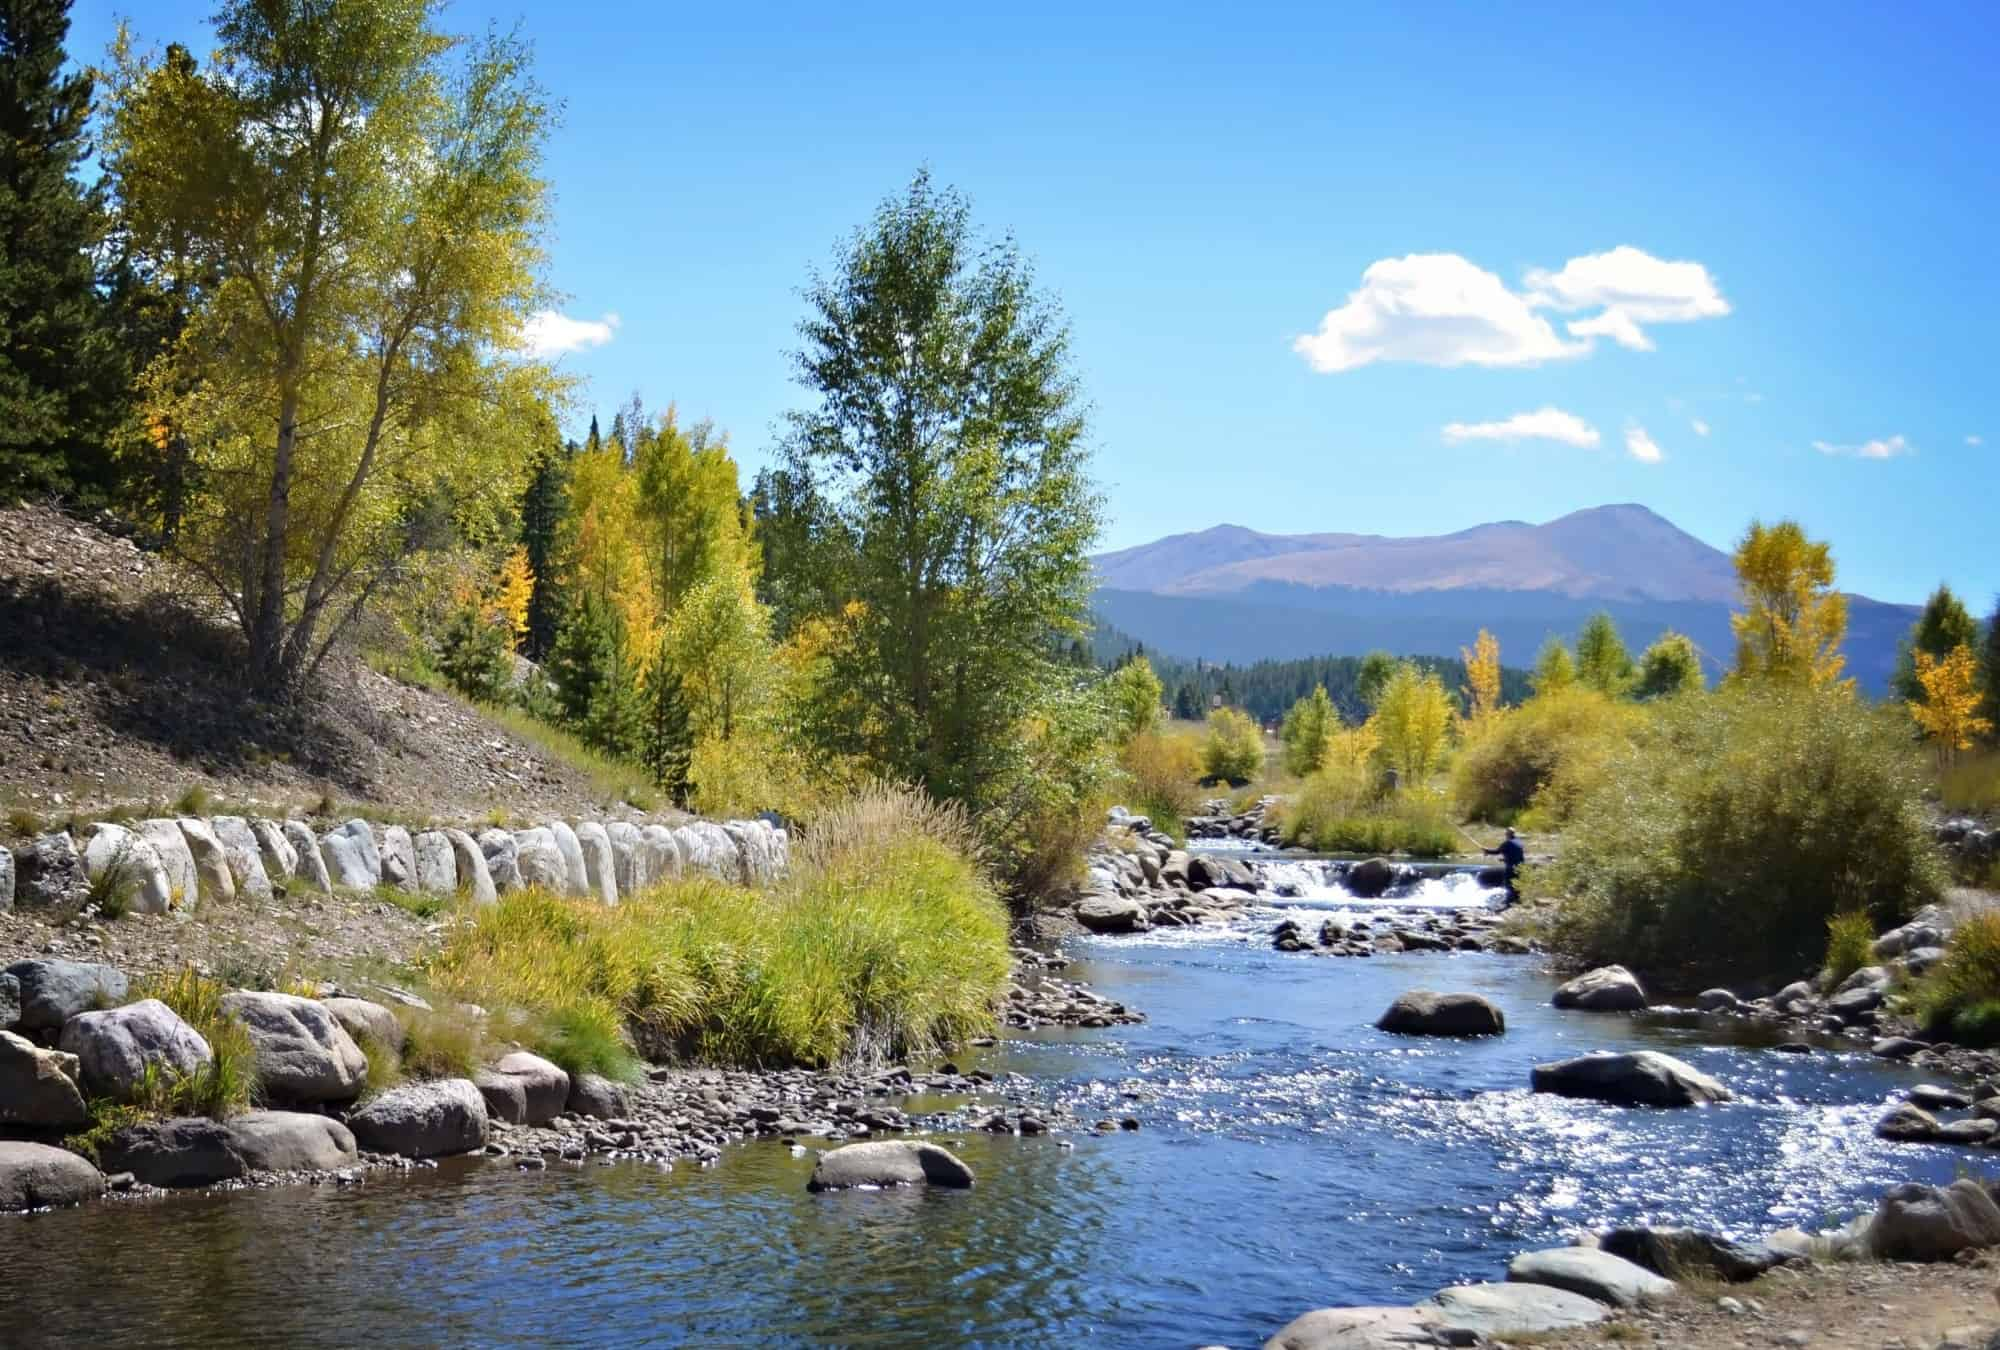 10 Things to do during Summer in Breckenridge, Colorado